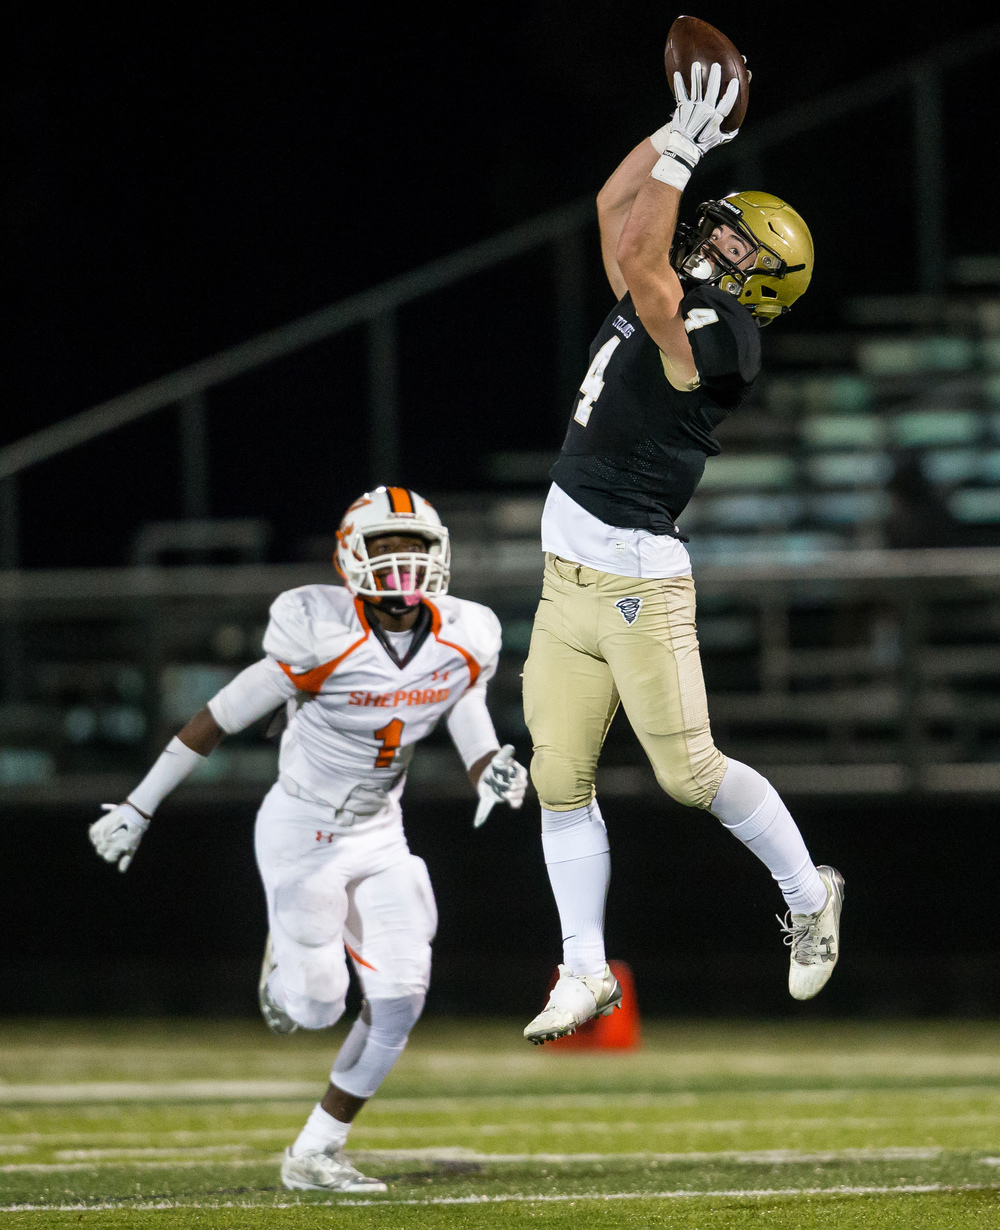 Sacred Heart-Griffin's Sam Bonansinga (4) leaps up to make a catch against Palos Heights Shepard's Mario Wilson (1) in the second quarter during the first round of the Class 6A playoffs at the Sacred Heart-Griffin Sports Complex, Friday, Oct. 30, 2015, in Springfield, Ill. Justin L. Fowler/The State Journal-Register